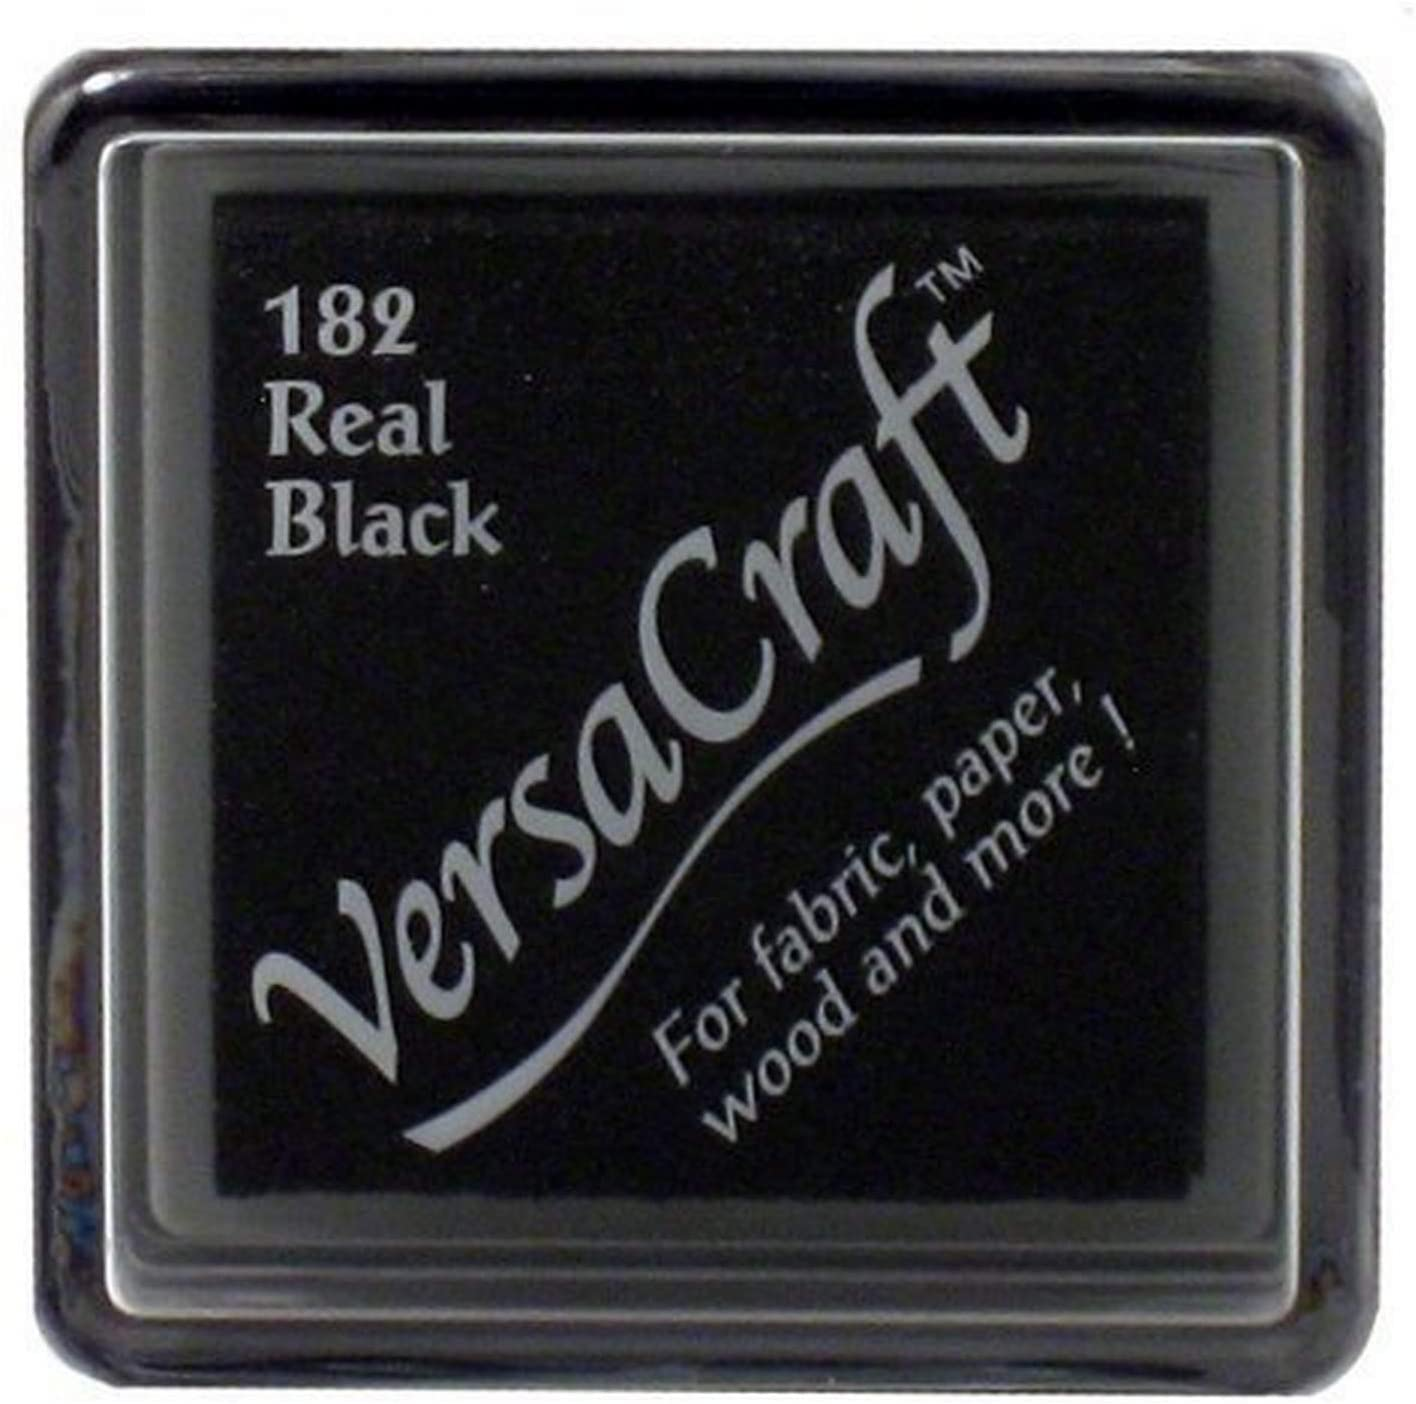 Tsukineko Small Size VersaCraft Fabric and Home Decor Crafting Pigment Inkpad, Real Black